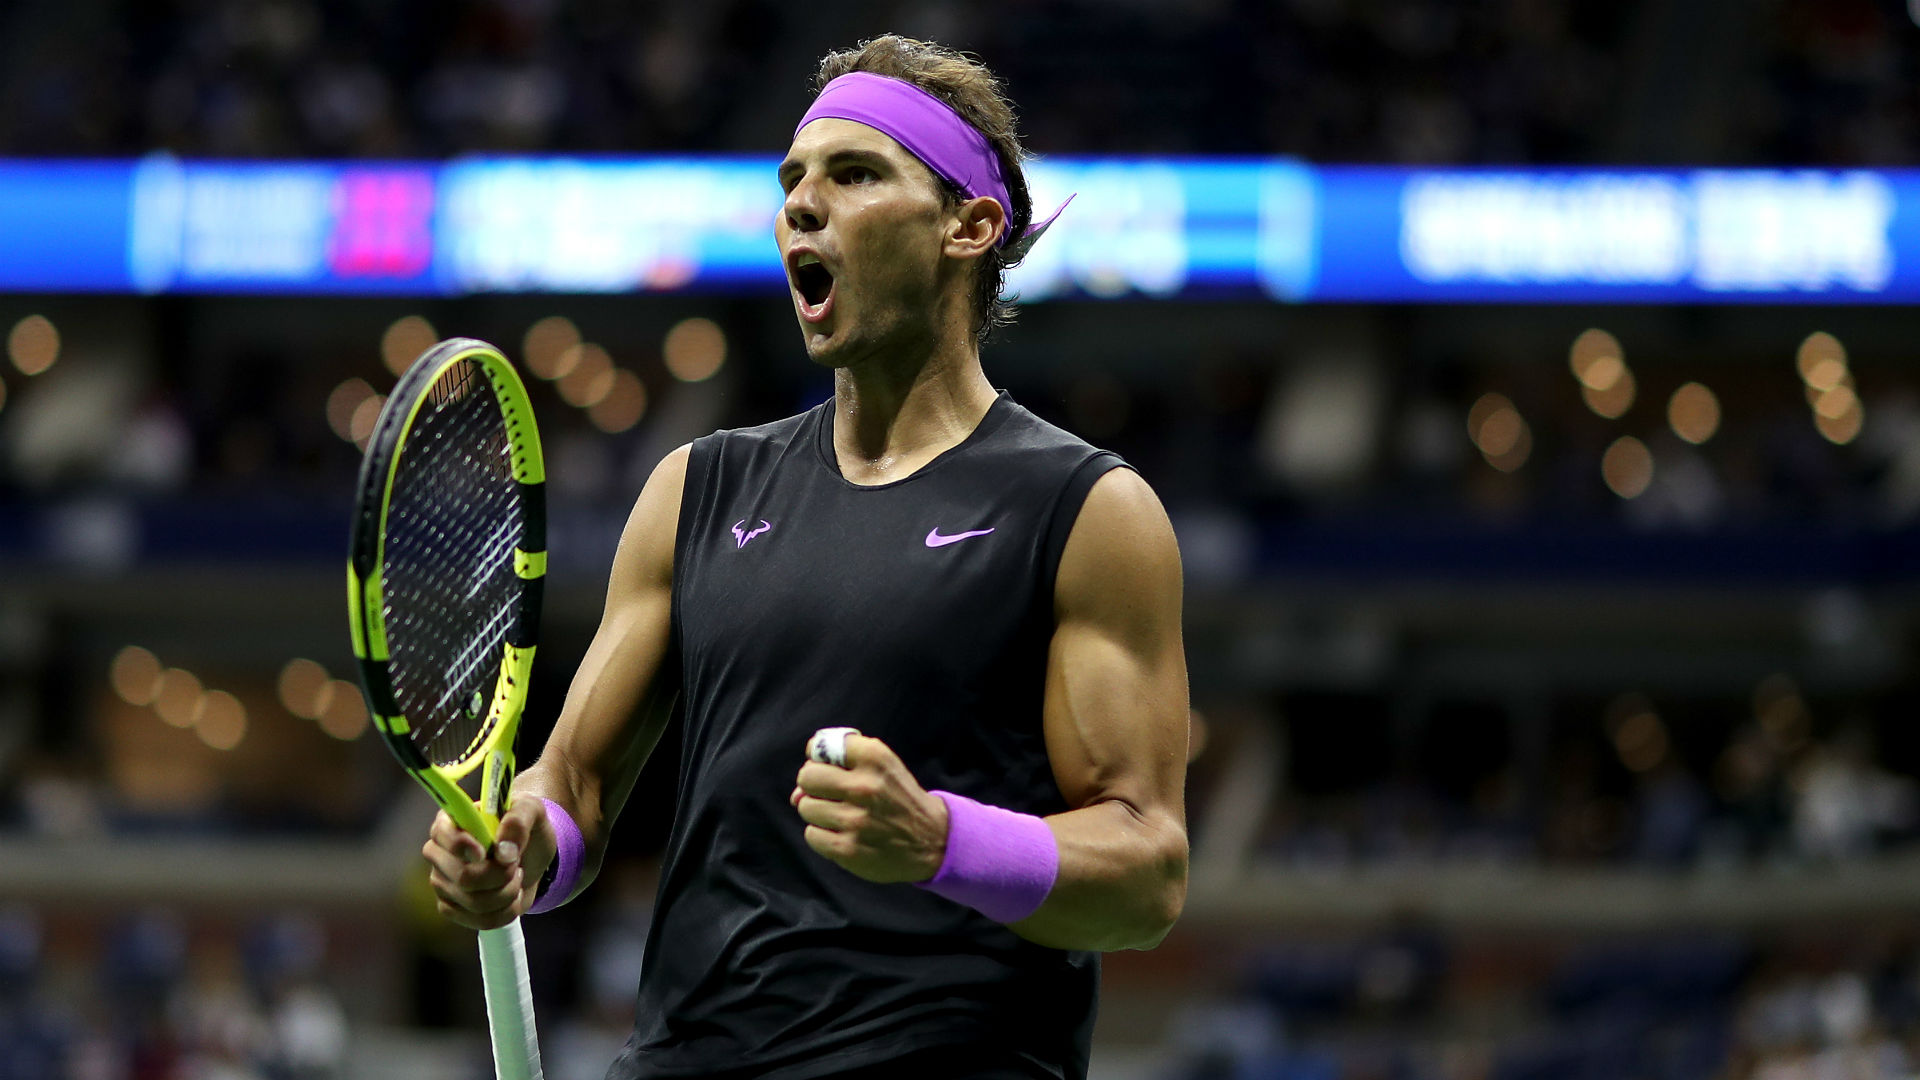 U S Open 2019 Rafael Nadal Not Motivated By Maintaining Big Four Streak Sporting News